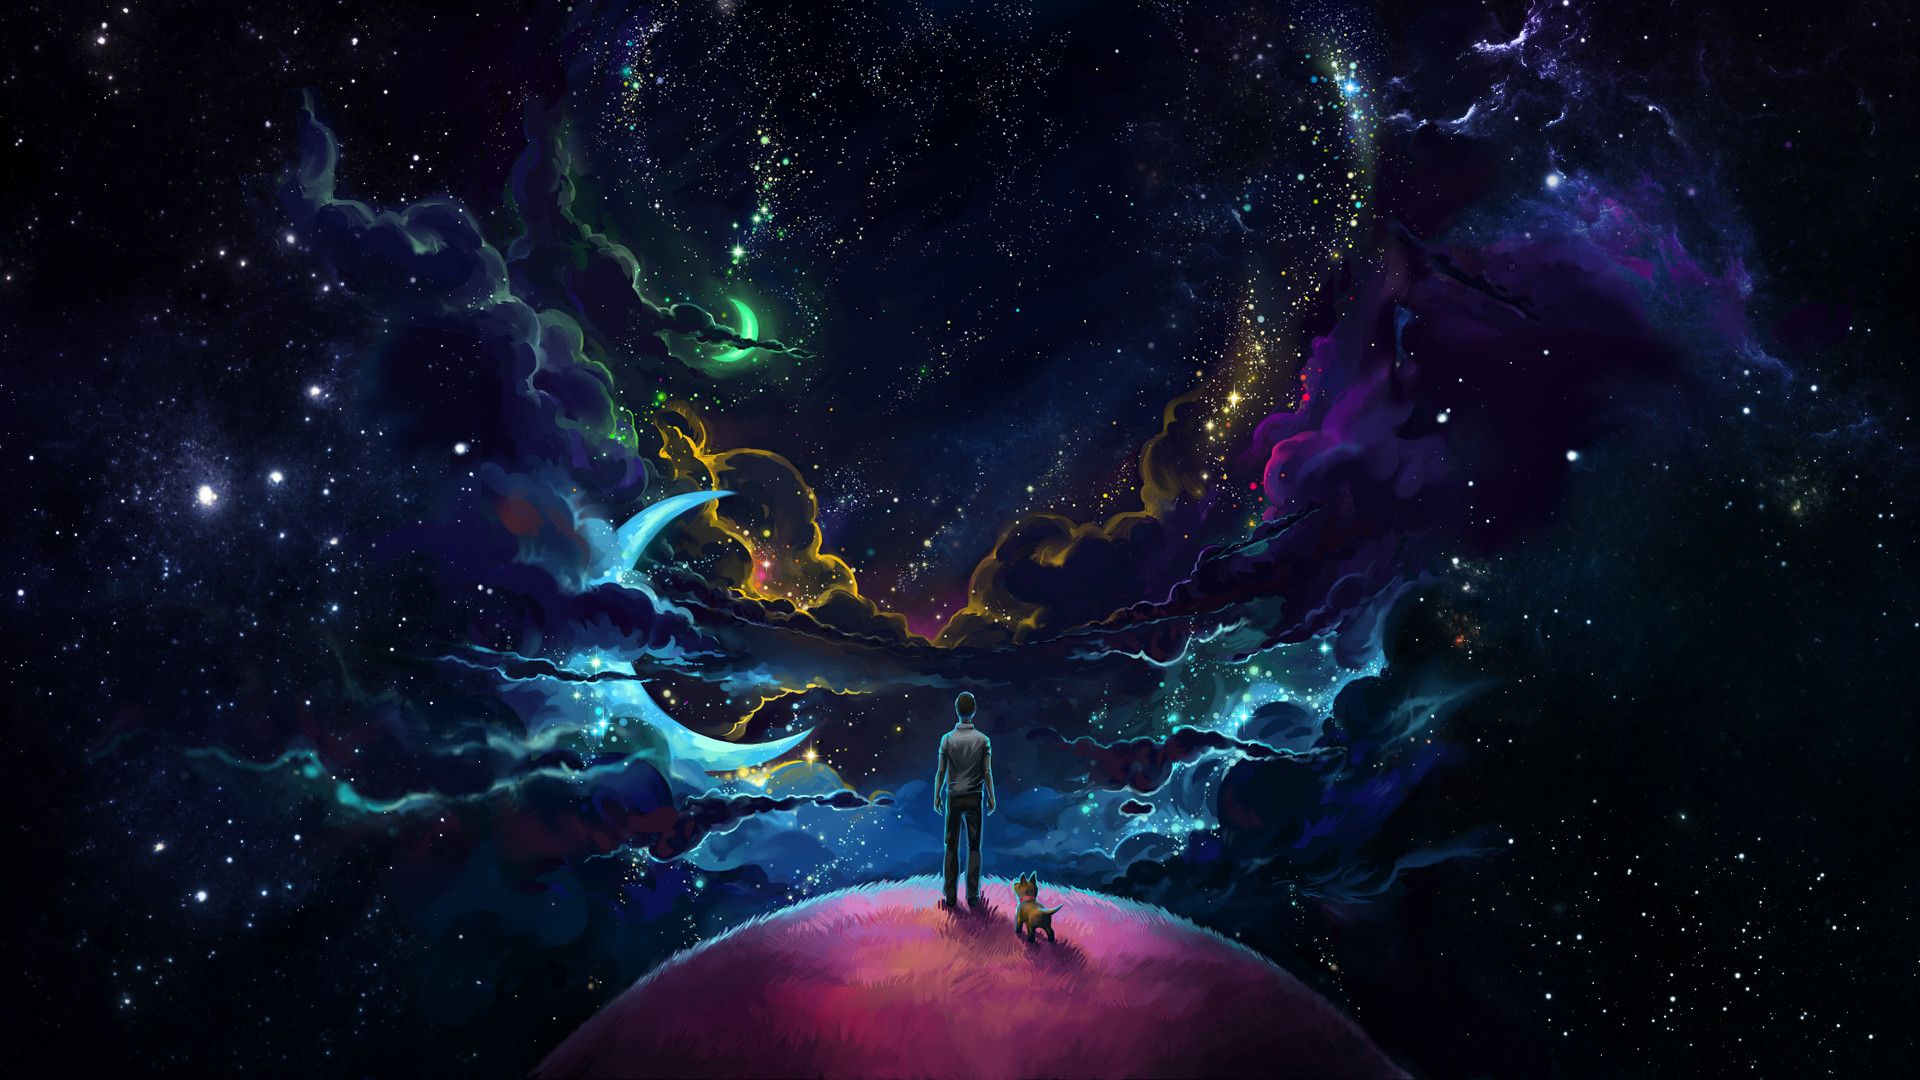 Neon Space Wallpapers Top Free Neon Space Backgrounds Wallpaperaccess